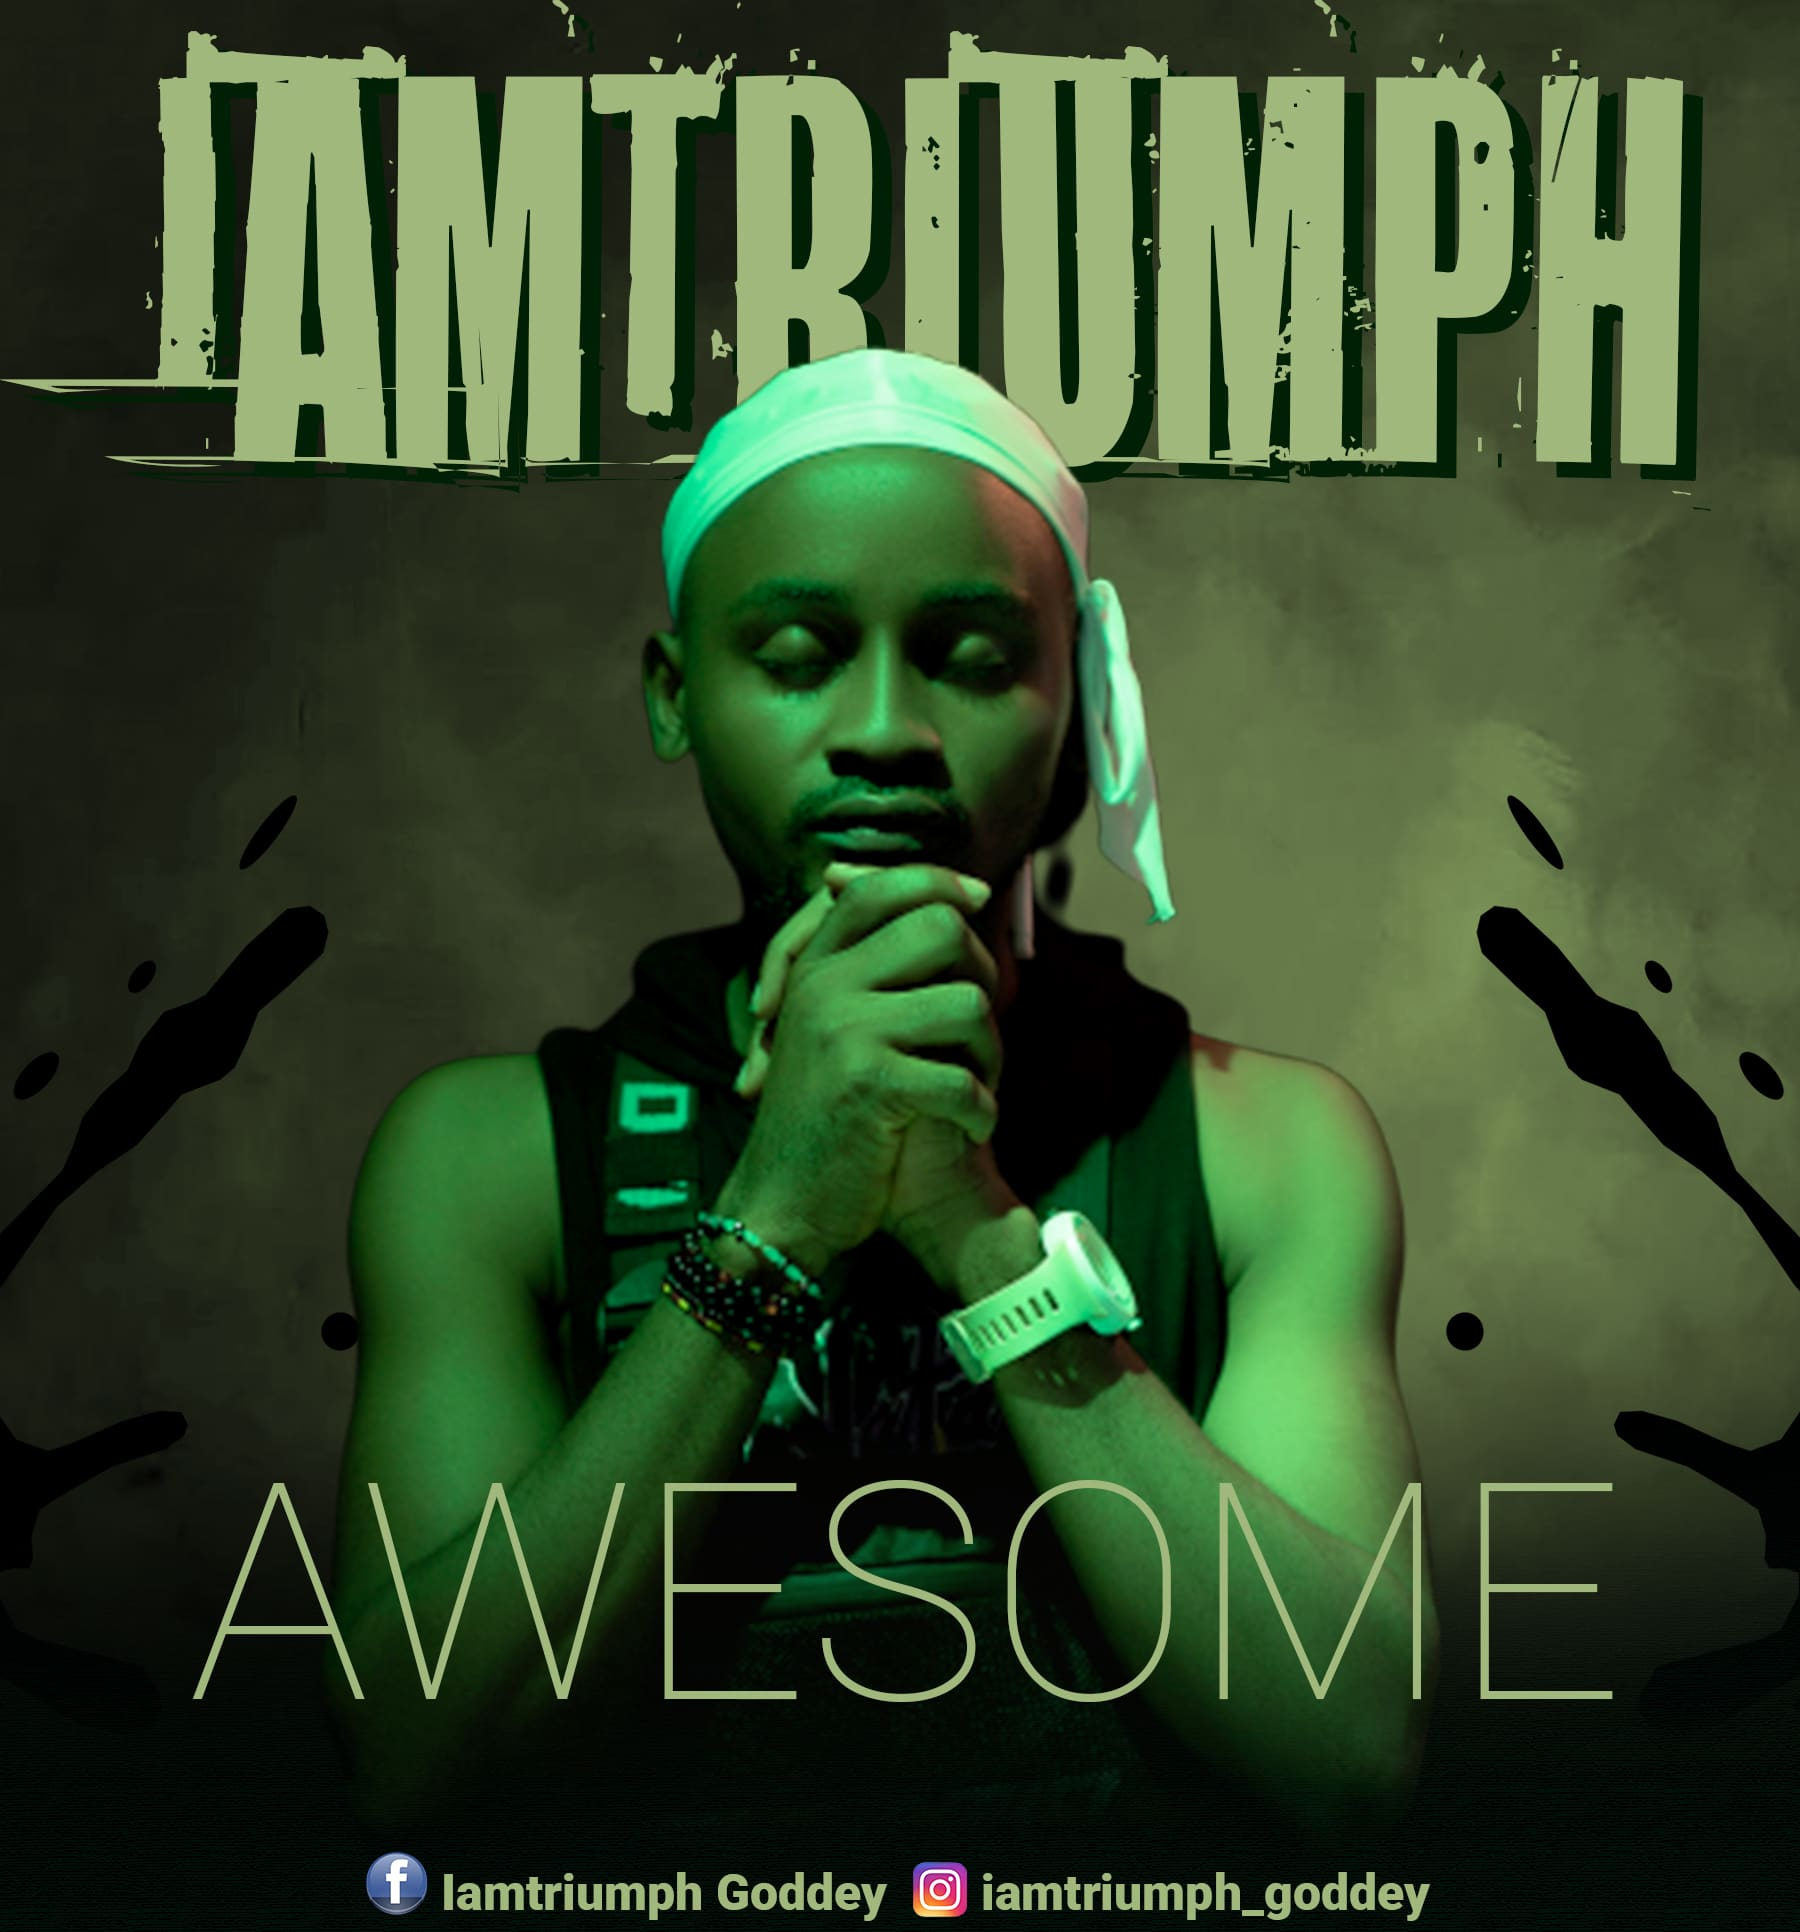 IamTriumph - Awesome